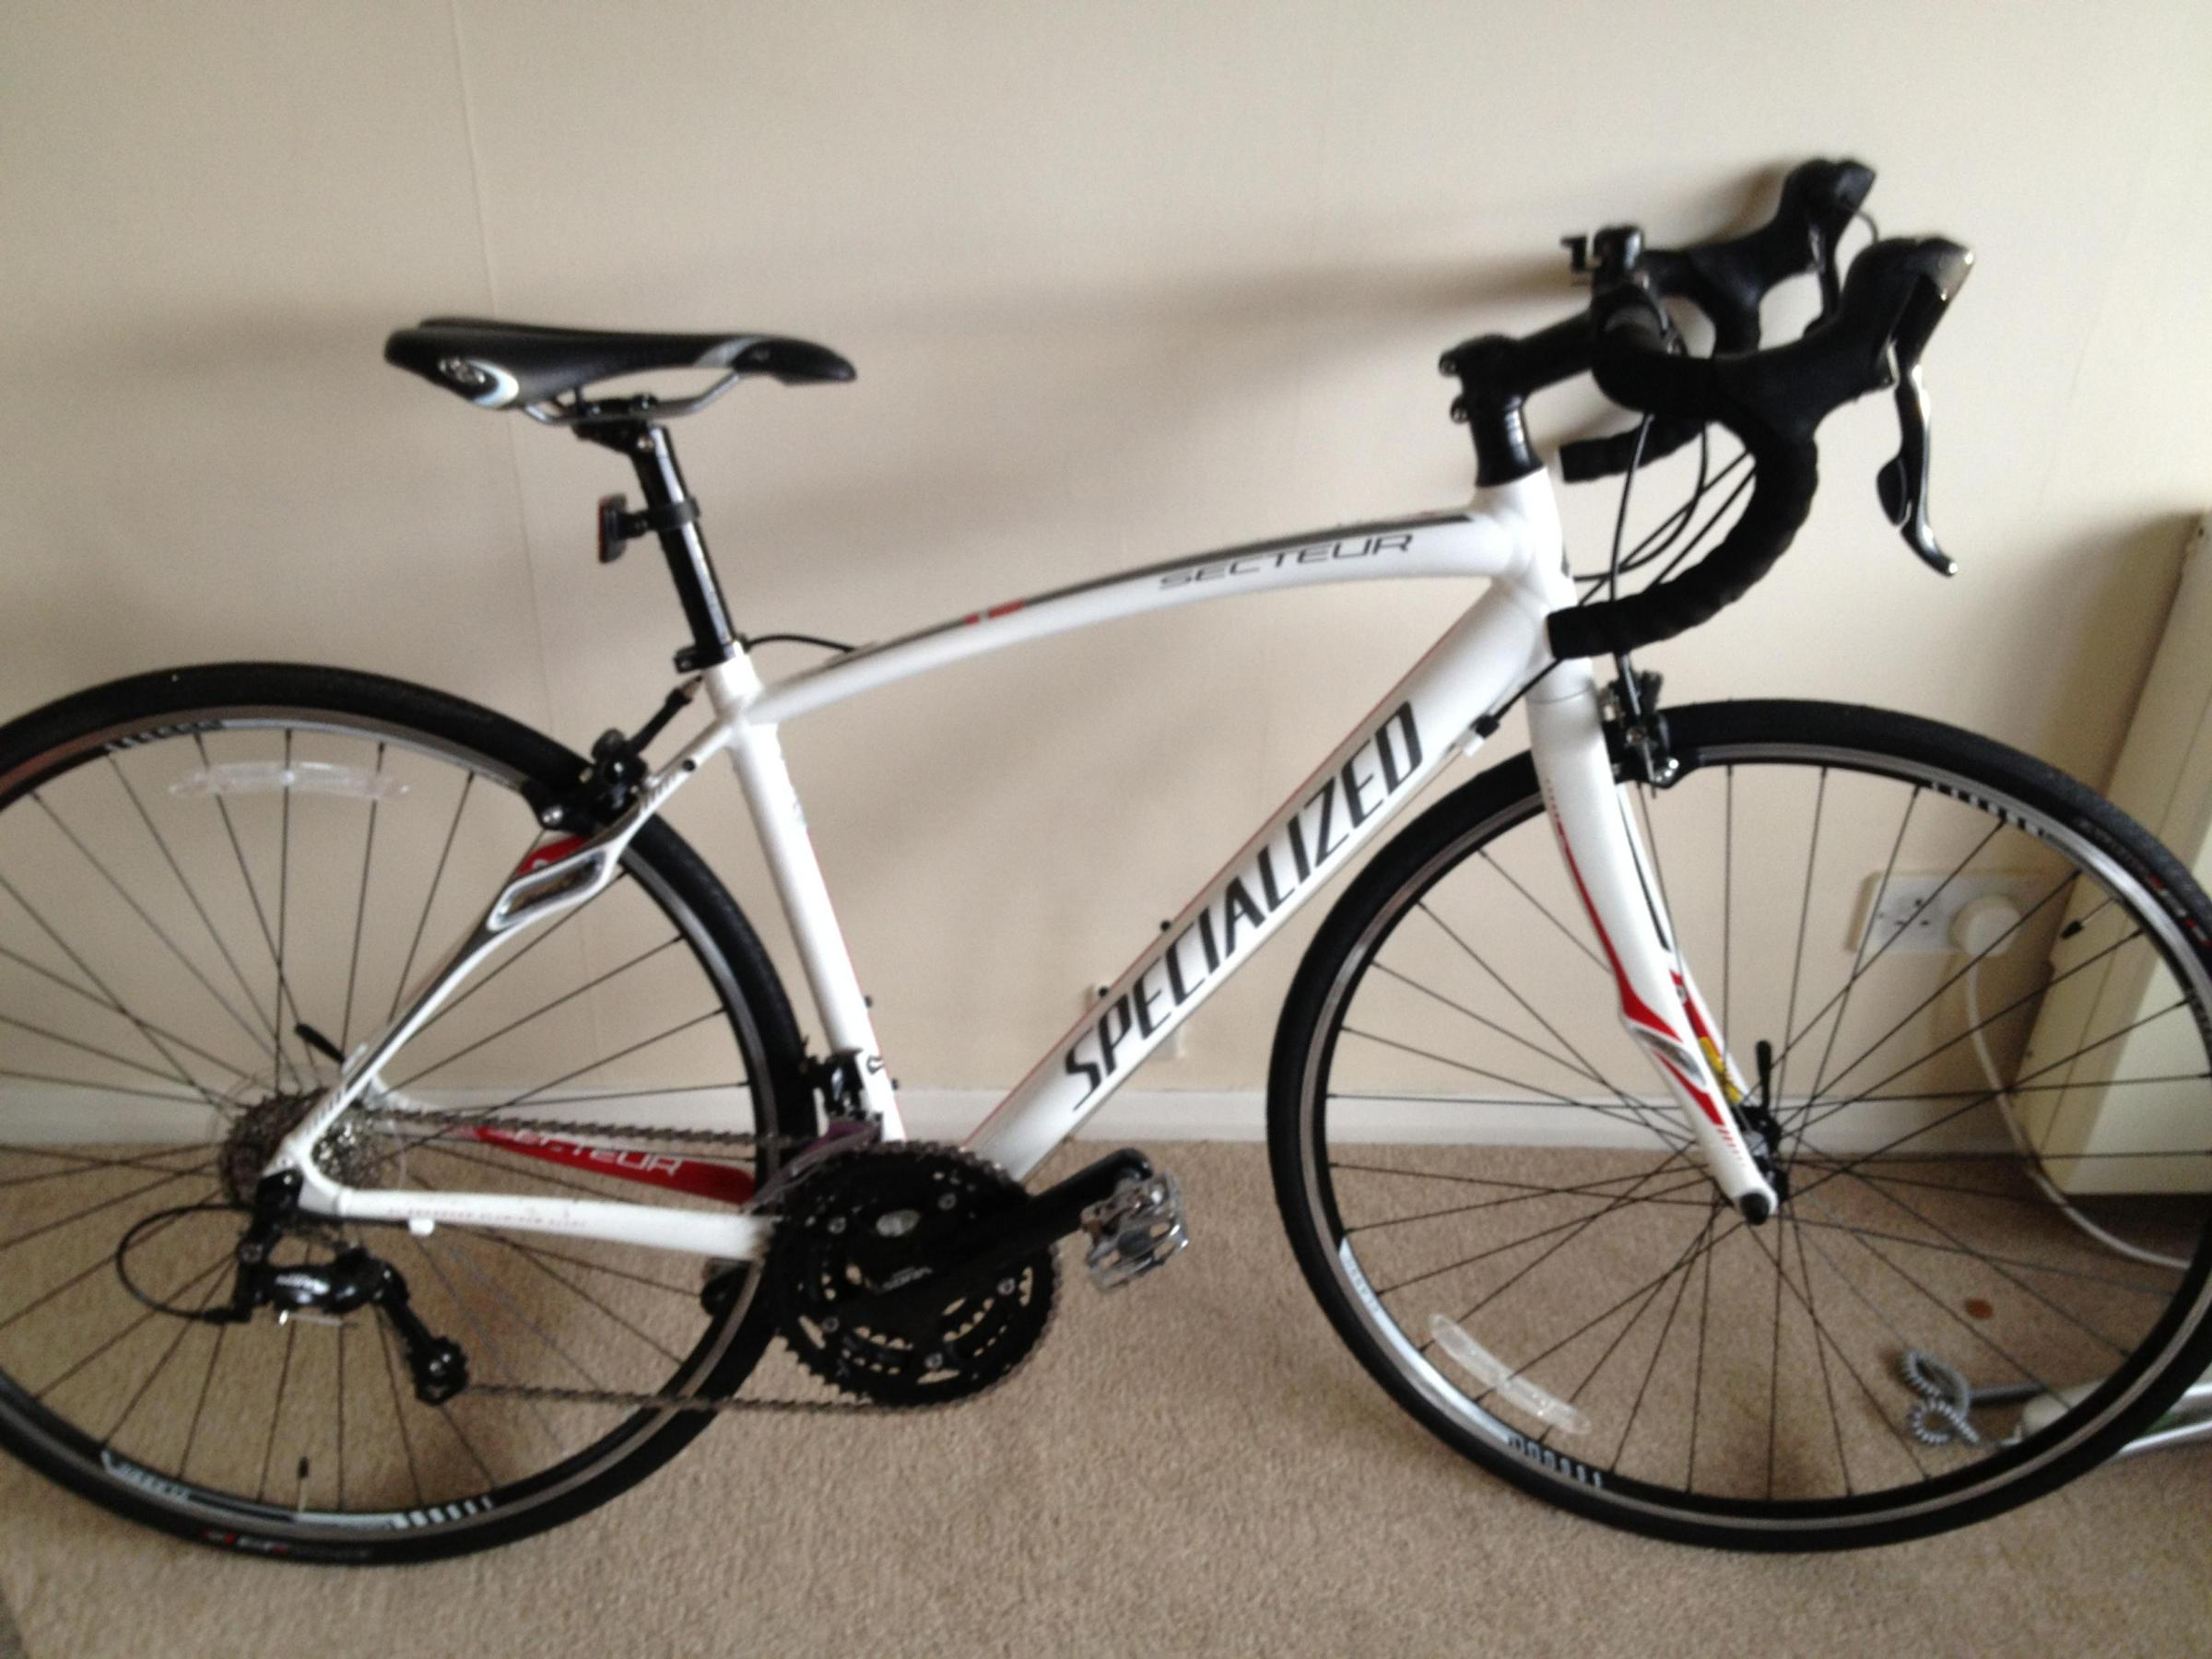 Picture of the bike stolen from Leicester Road, Wanstead